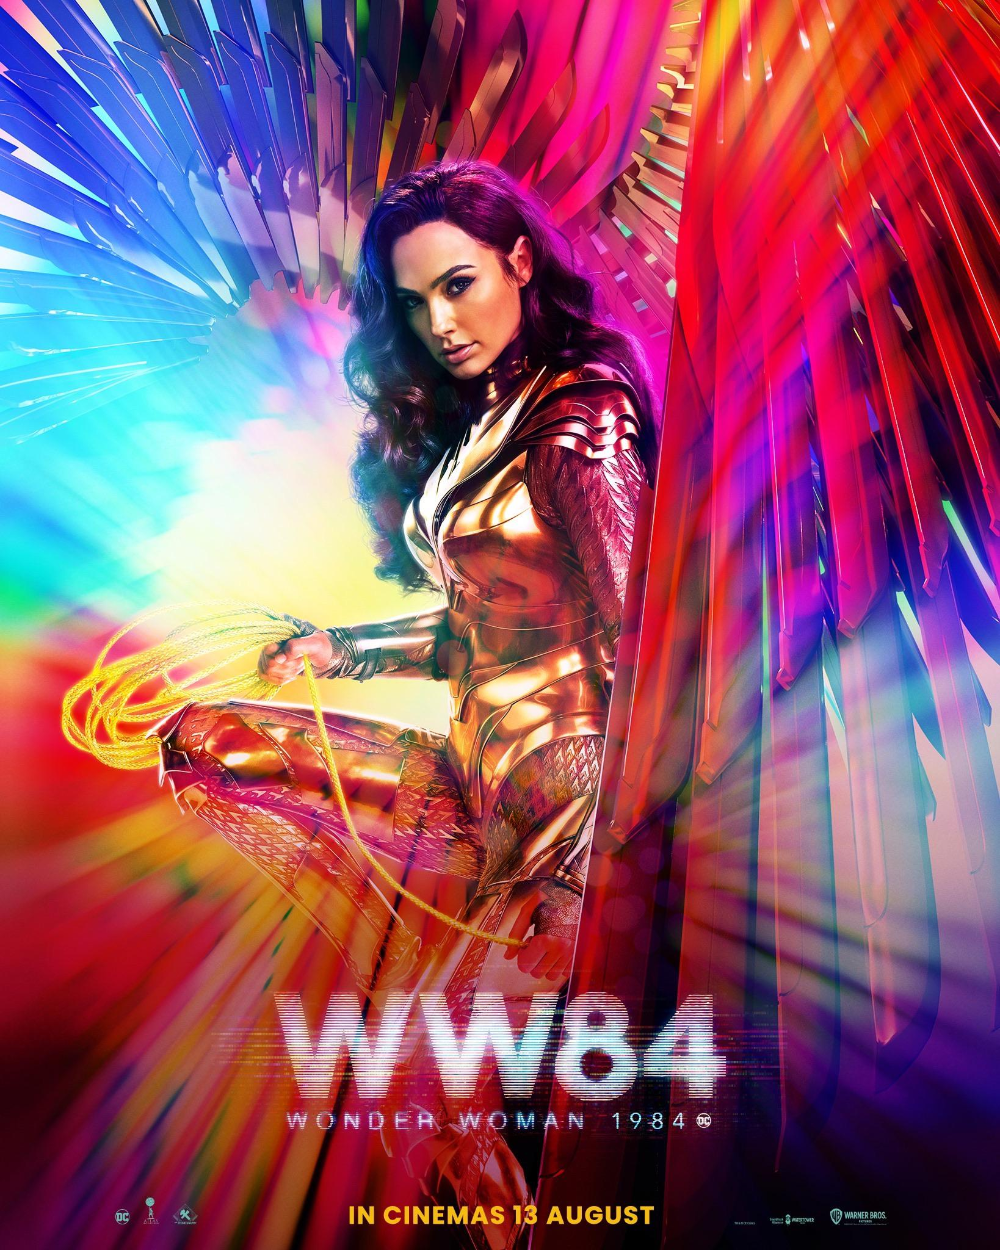 New Poster For Wonder Woman 1984 Movies Dceu In 2020 Wonder Woman New Poster 1984 Movie